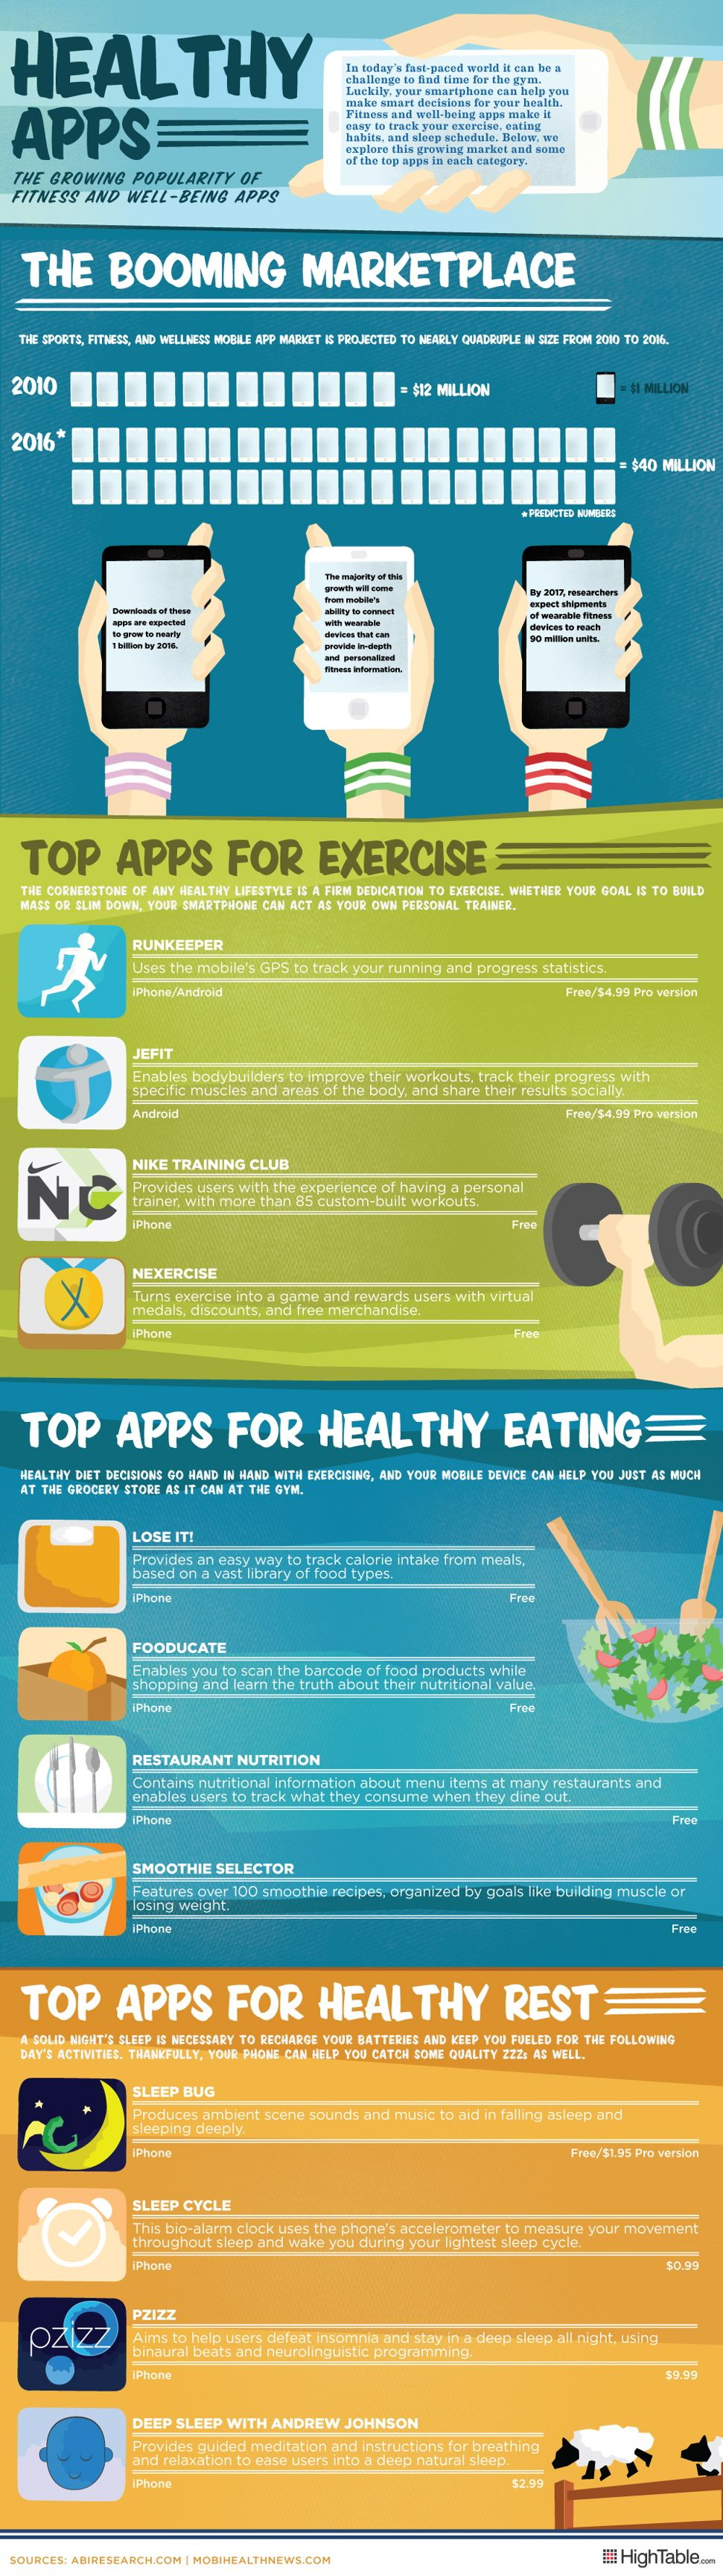 Healthy Apps To Help You Stay Healthy Infographic Health And Fitness Apps Healthy Apps Health App